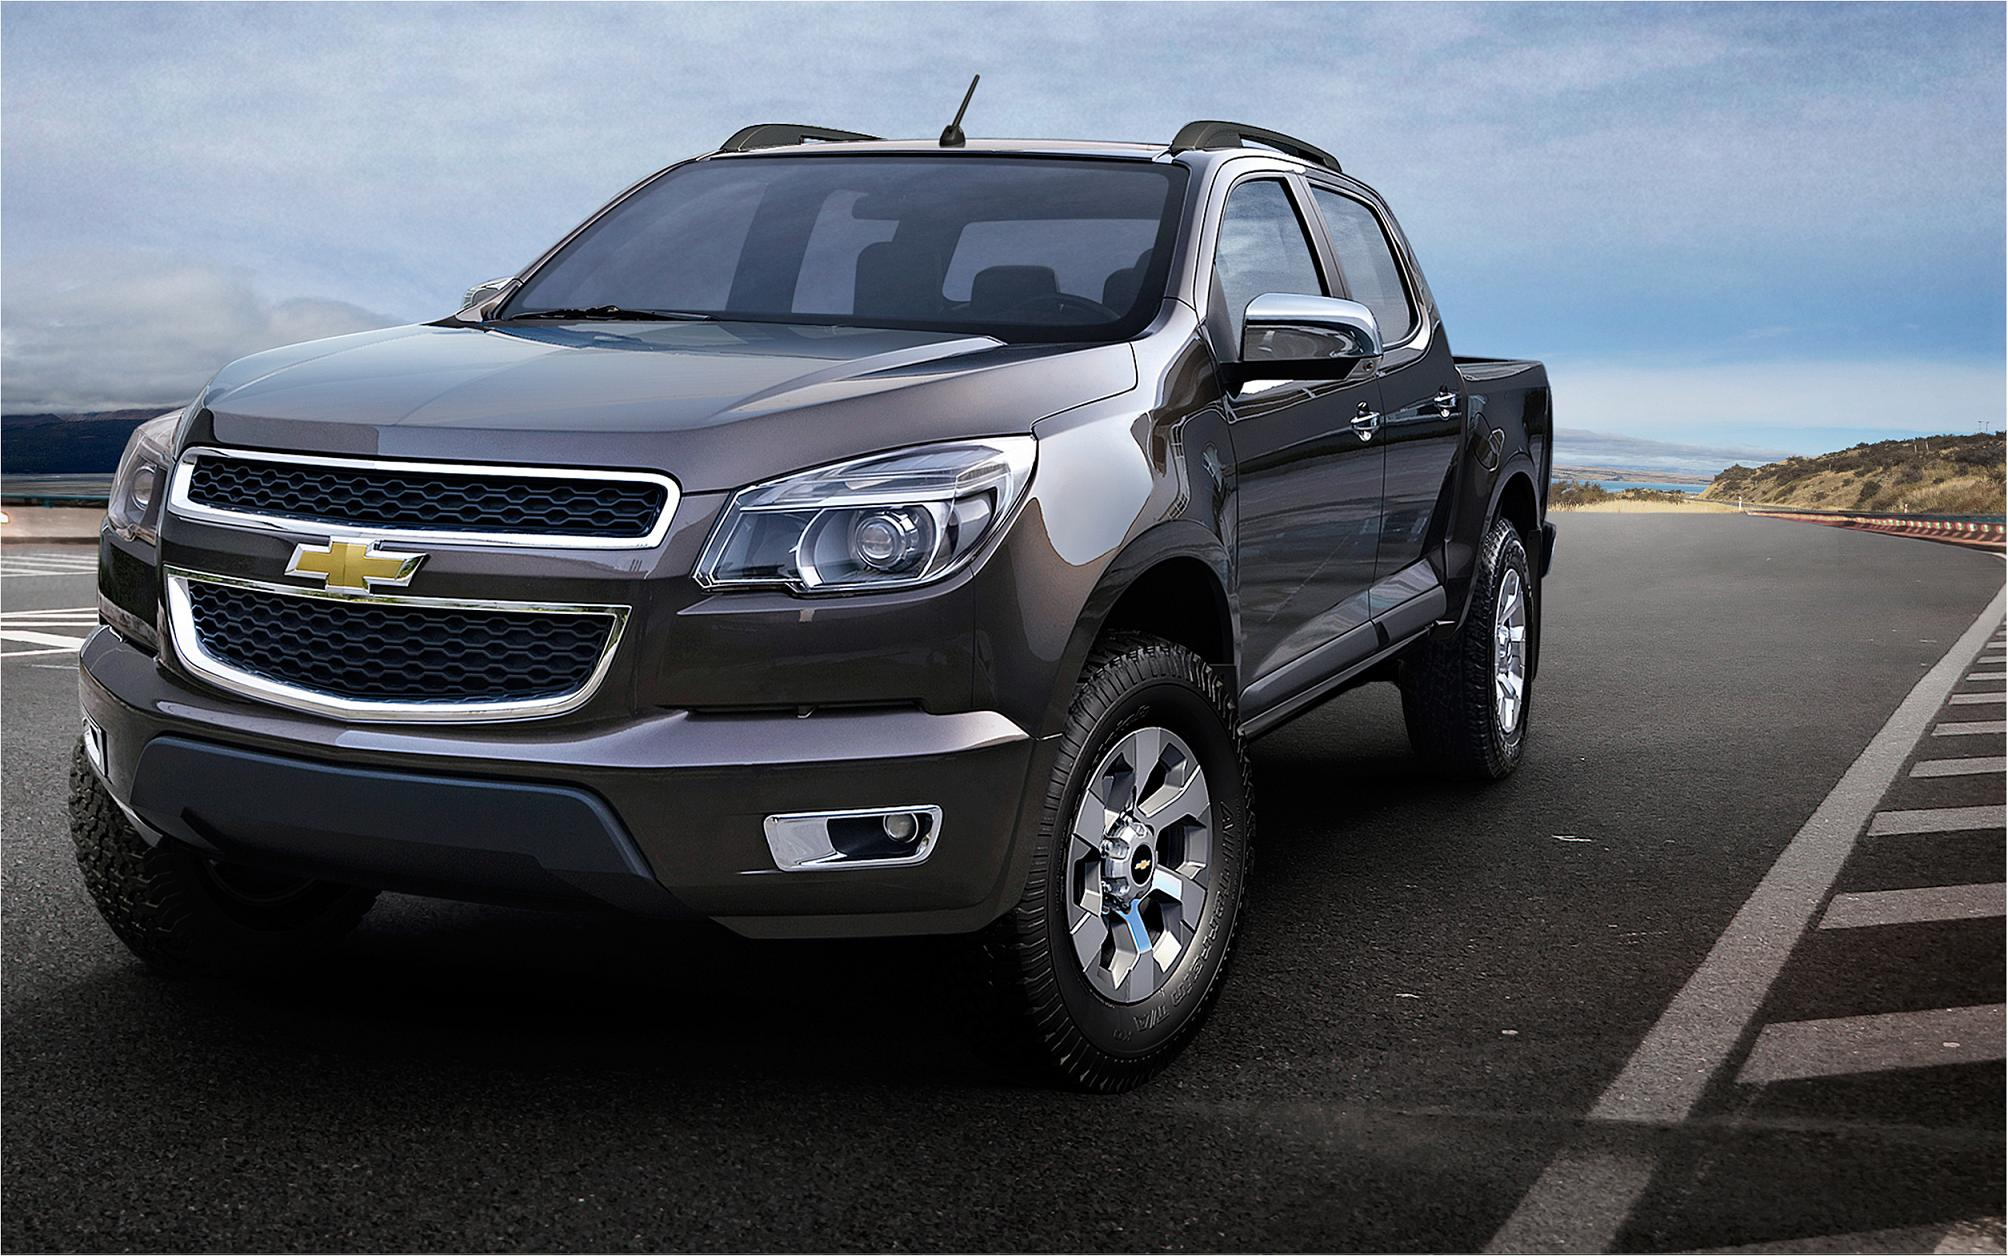 2012 all-new Chevrolet Colorado Crew Cab (Thailand version)